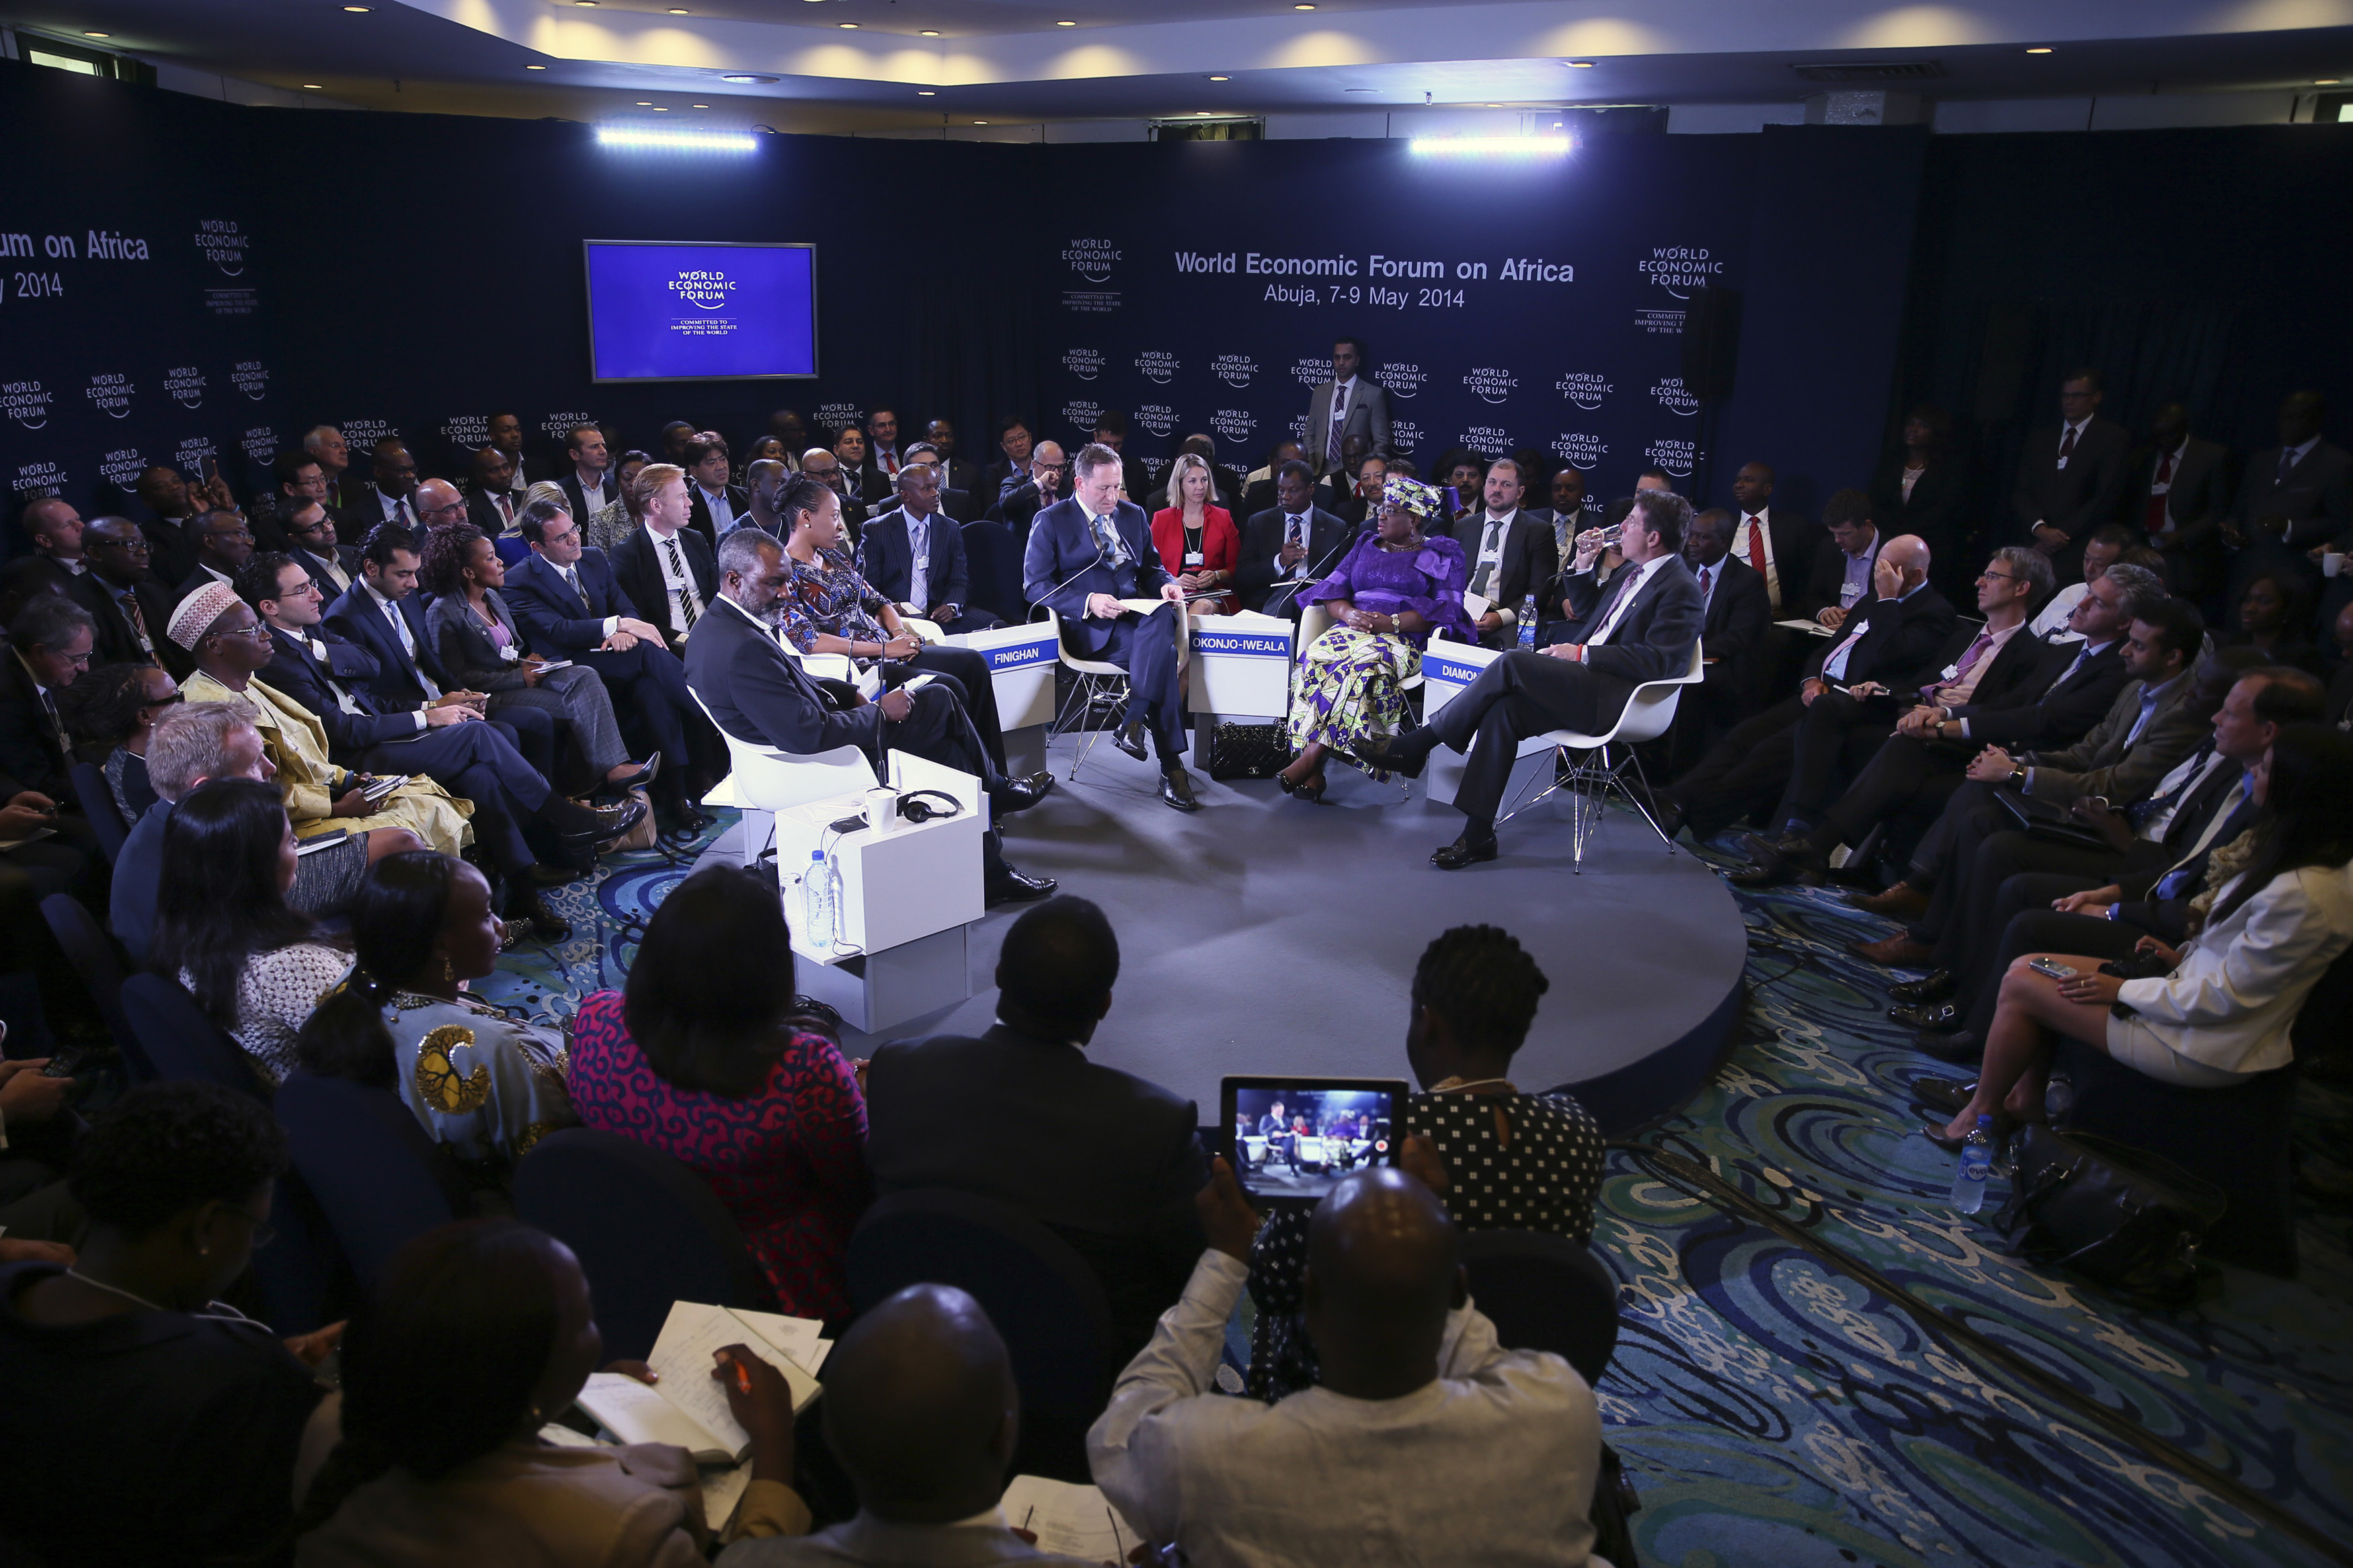 davos the world economic forum Prime minister justin trudeau will be among the headliners when 3,000 of the world's elite business leaders, activists and politicians gather this week for the annual invite-only world economic forum in davos, switzerland.